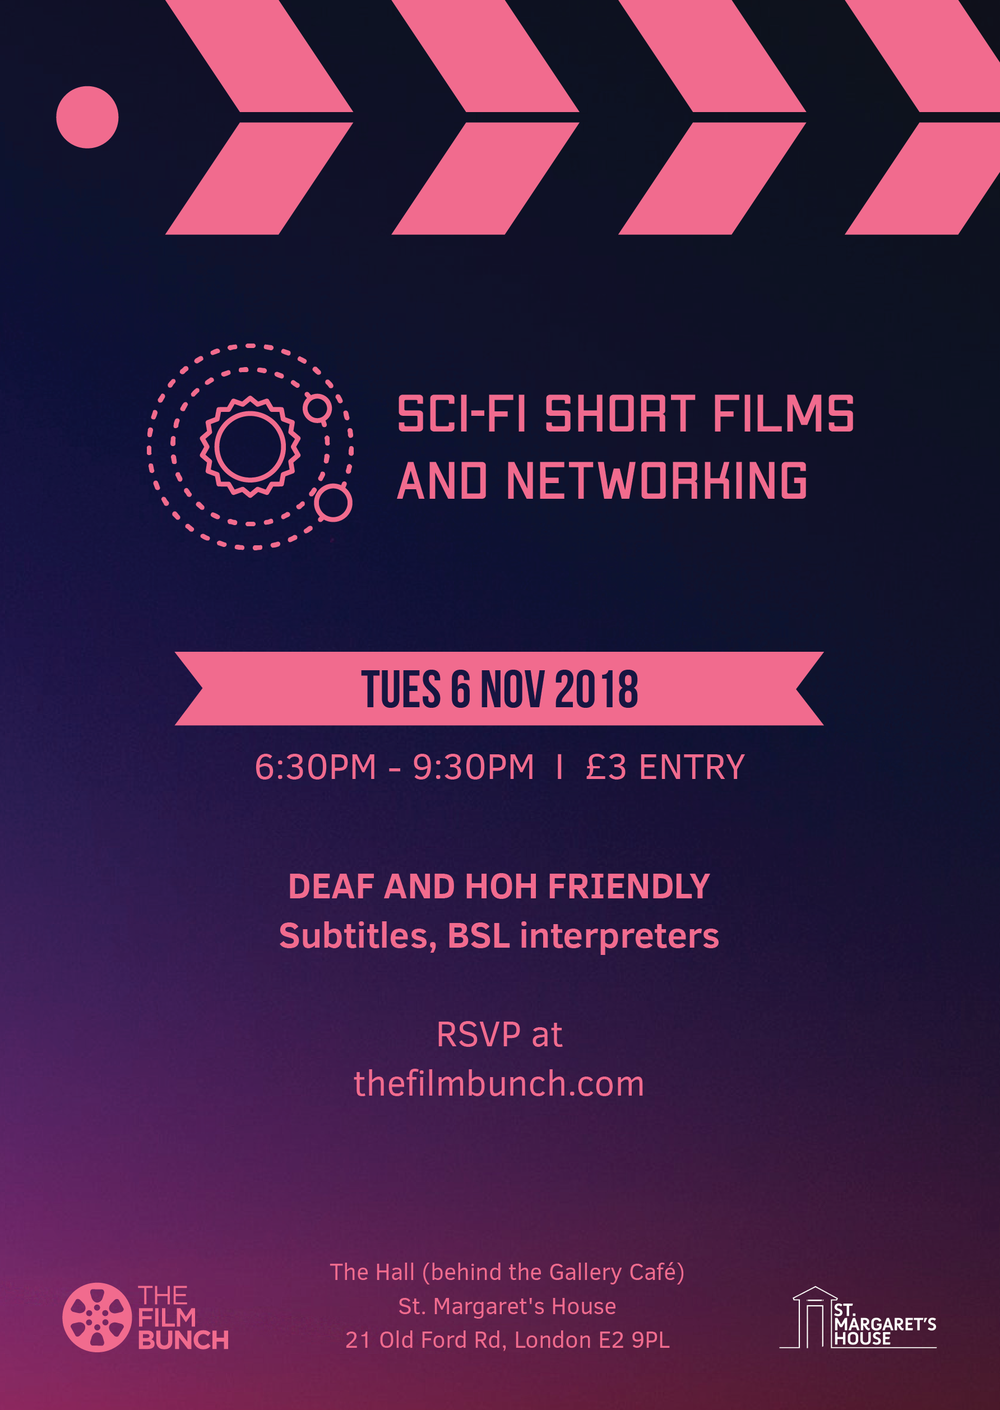 TheFilmBunch_EventFlyer_Nov2018.png